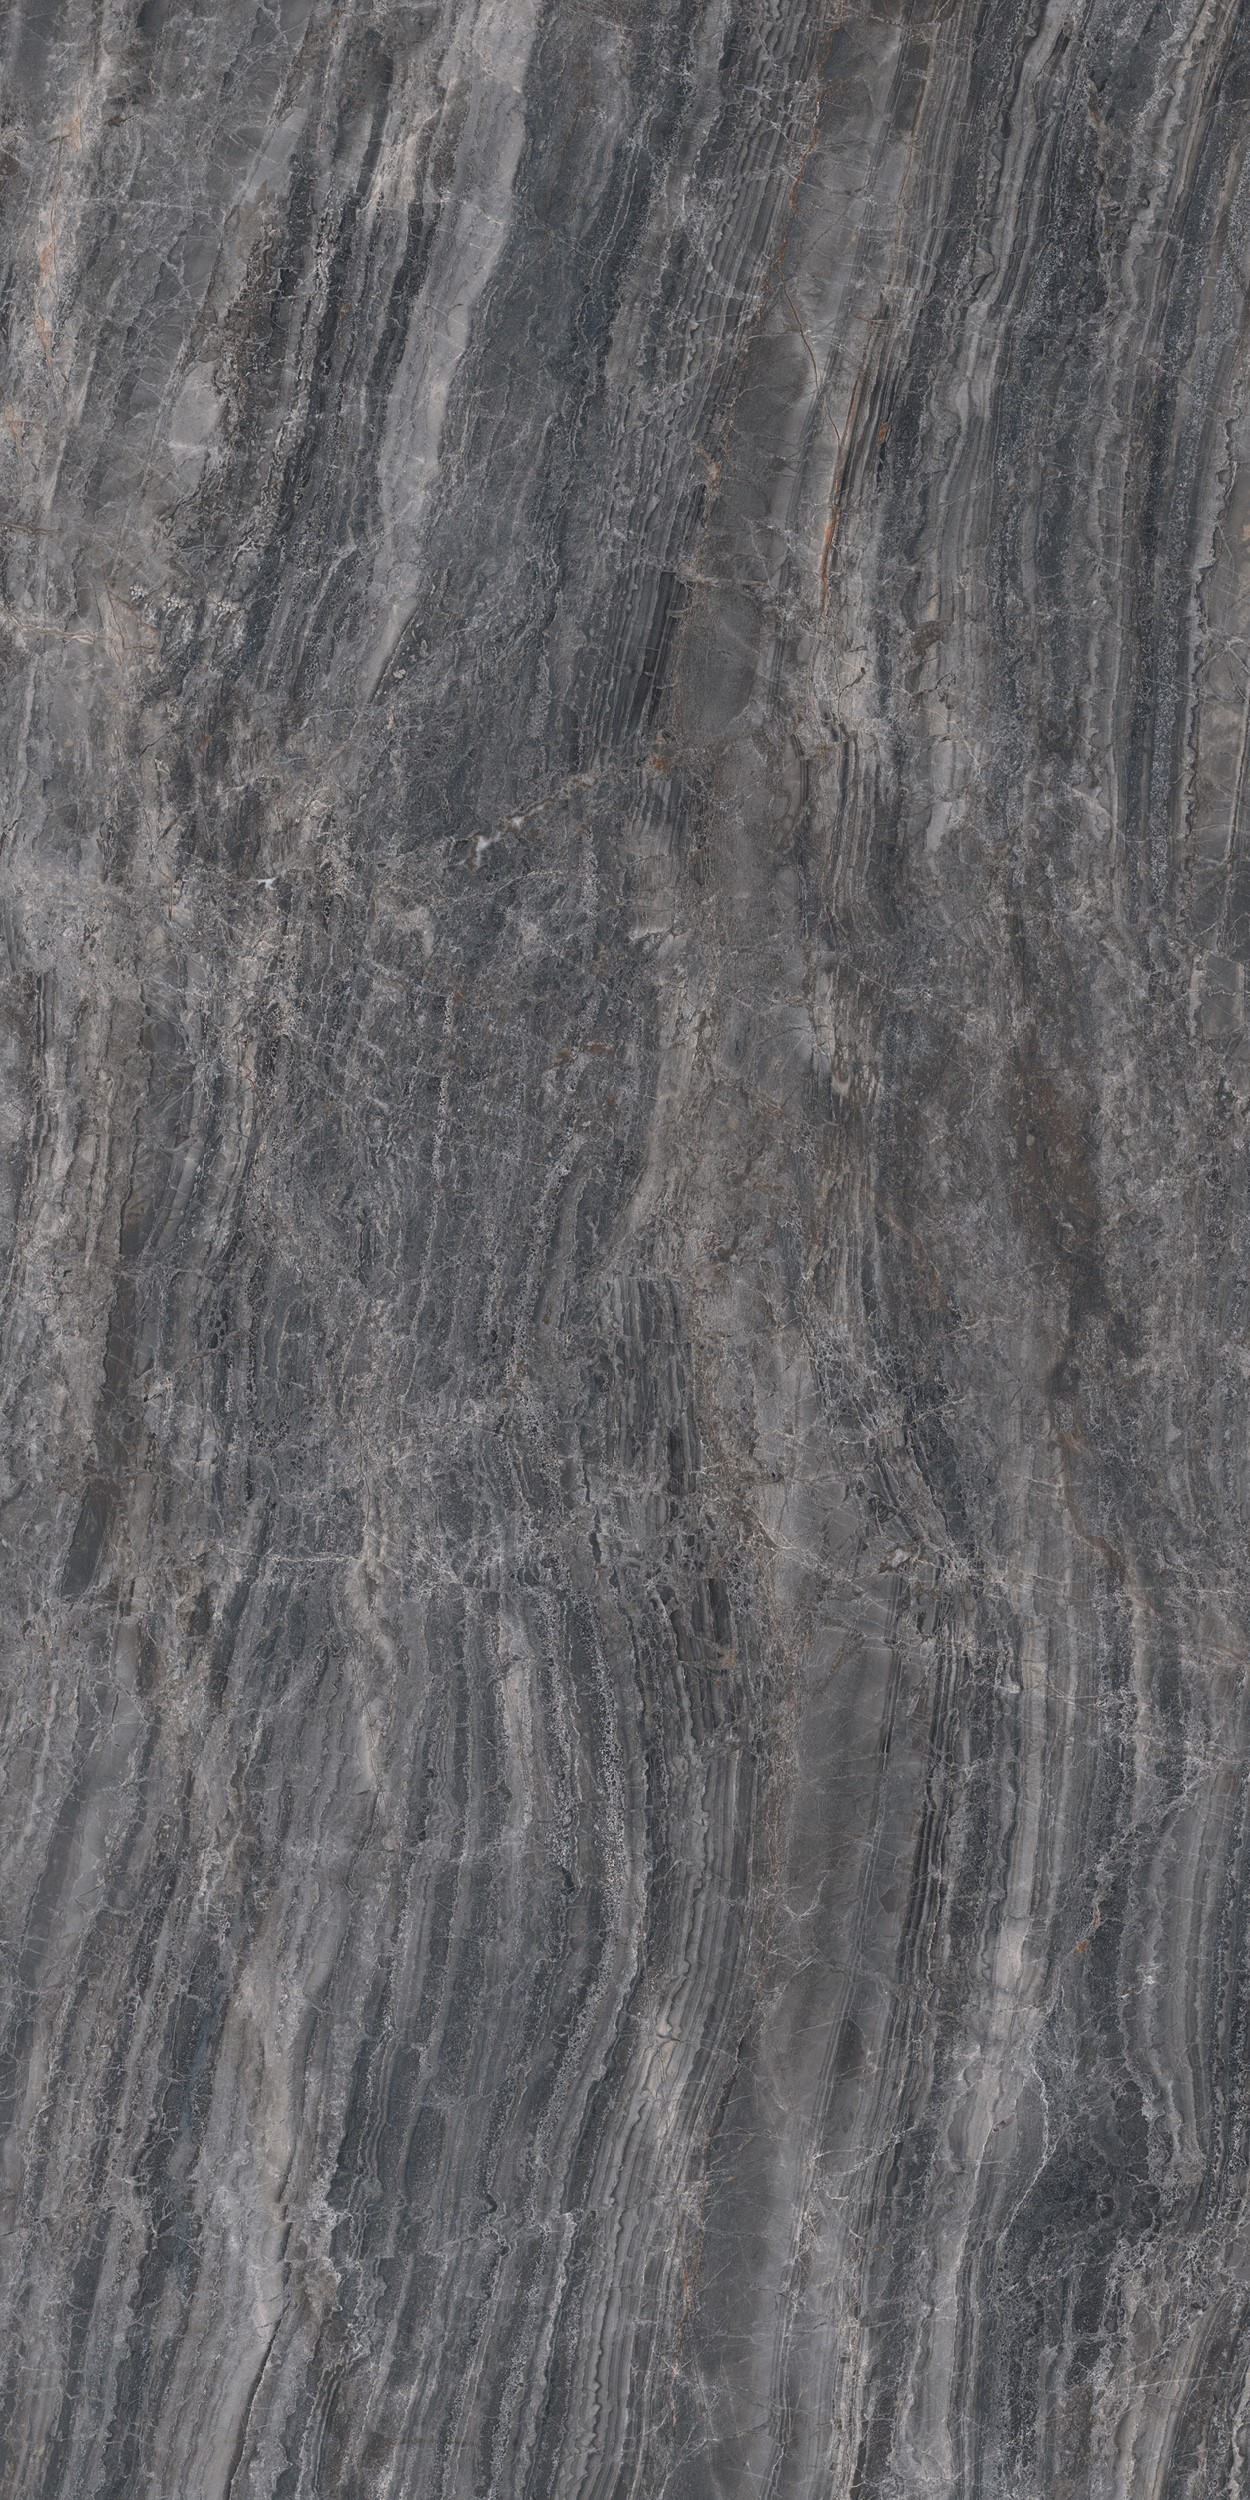 24 X 48 Cosmic Black HIGH POLISHED Rectified Porcelain Tile